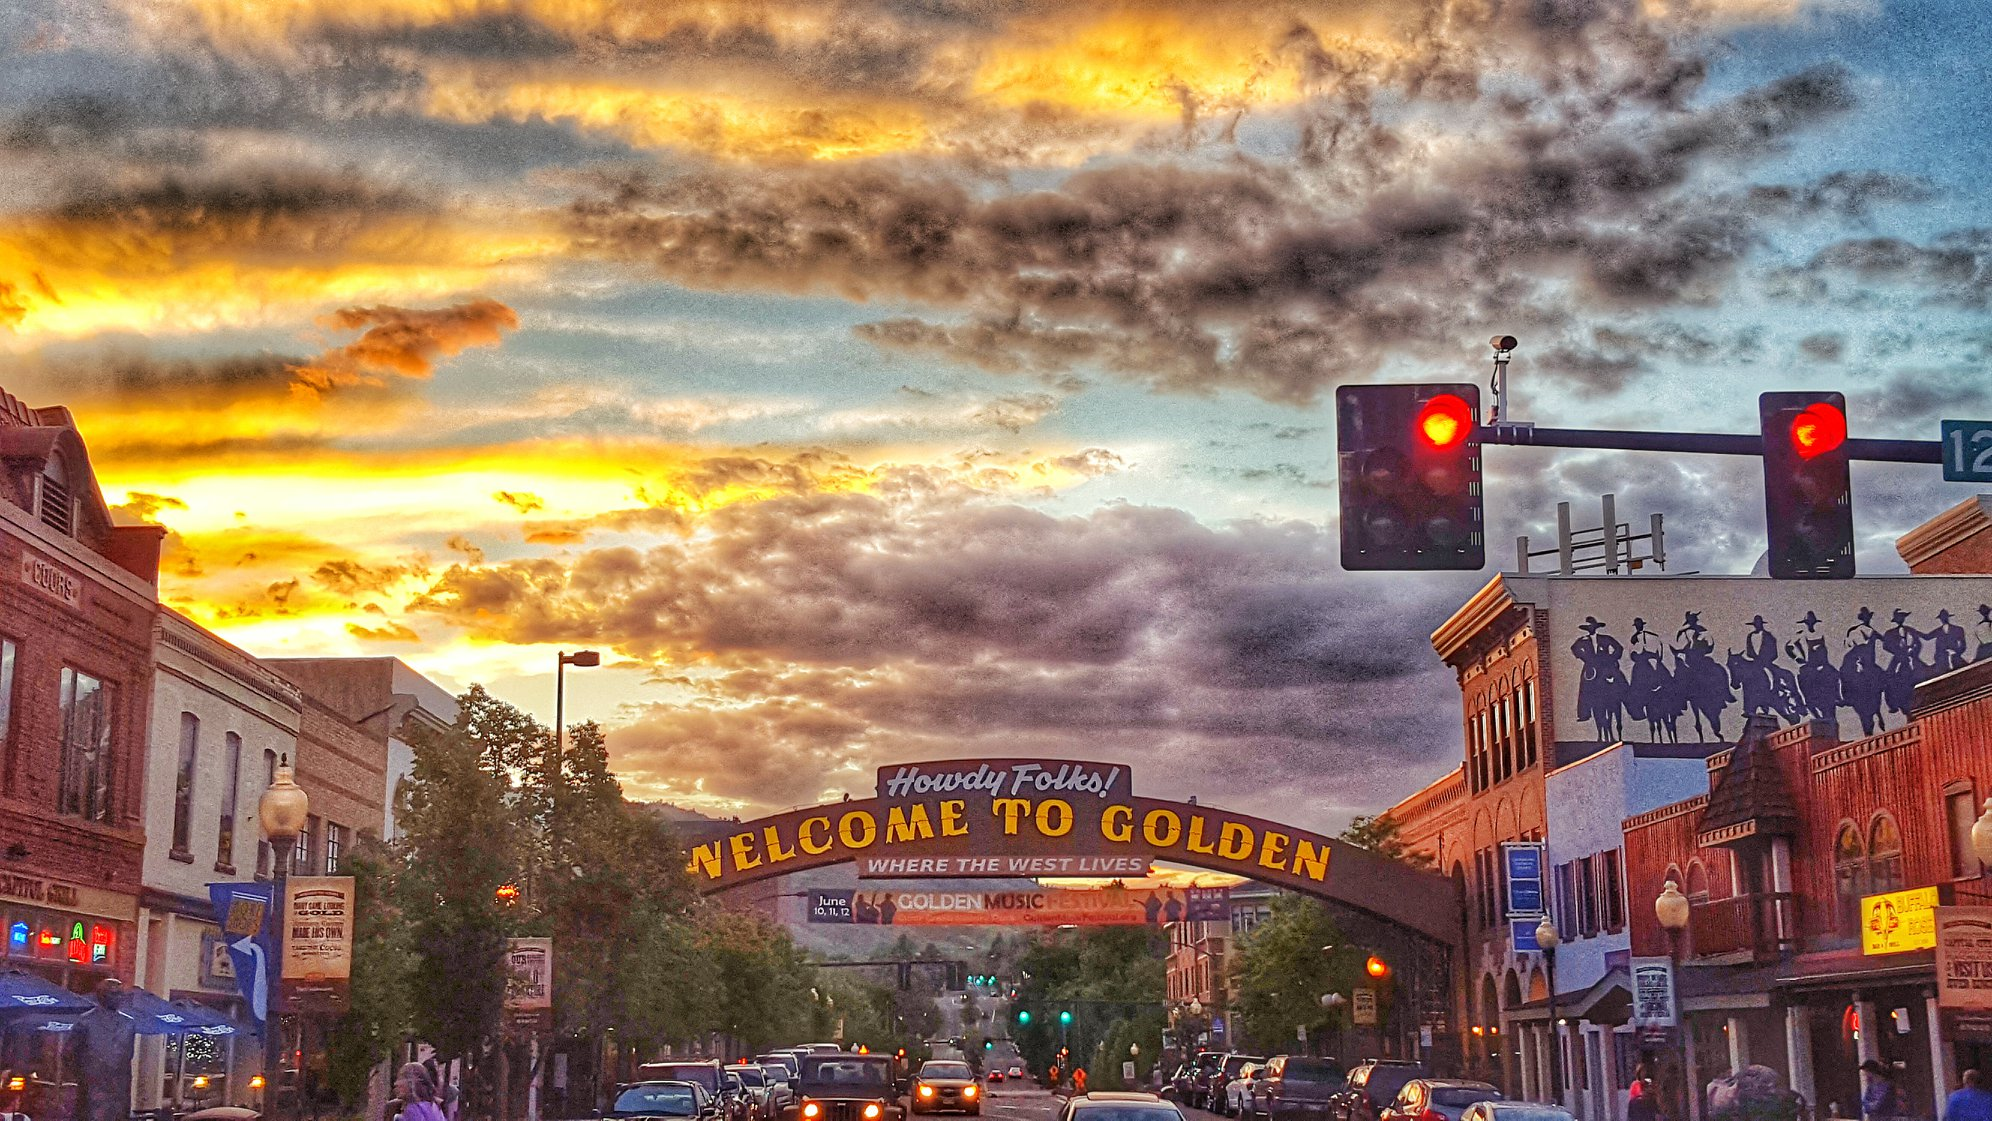 Golden Opportunities in Golden, Colorado